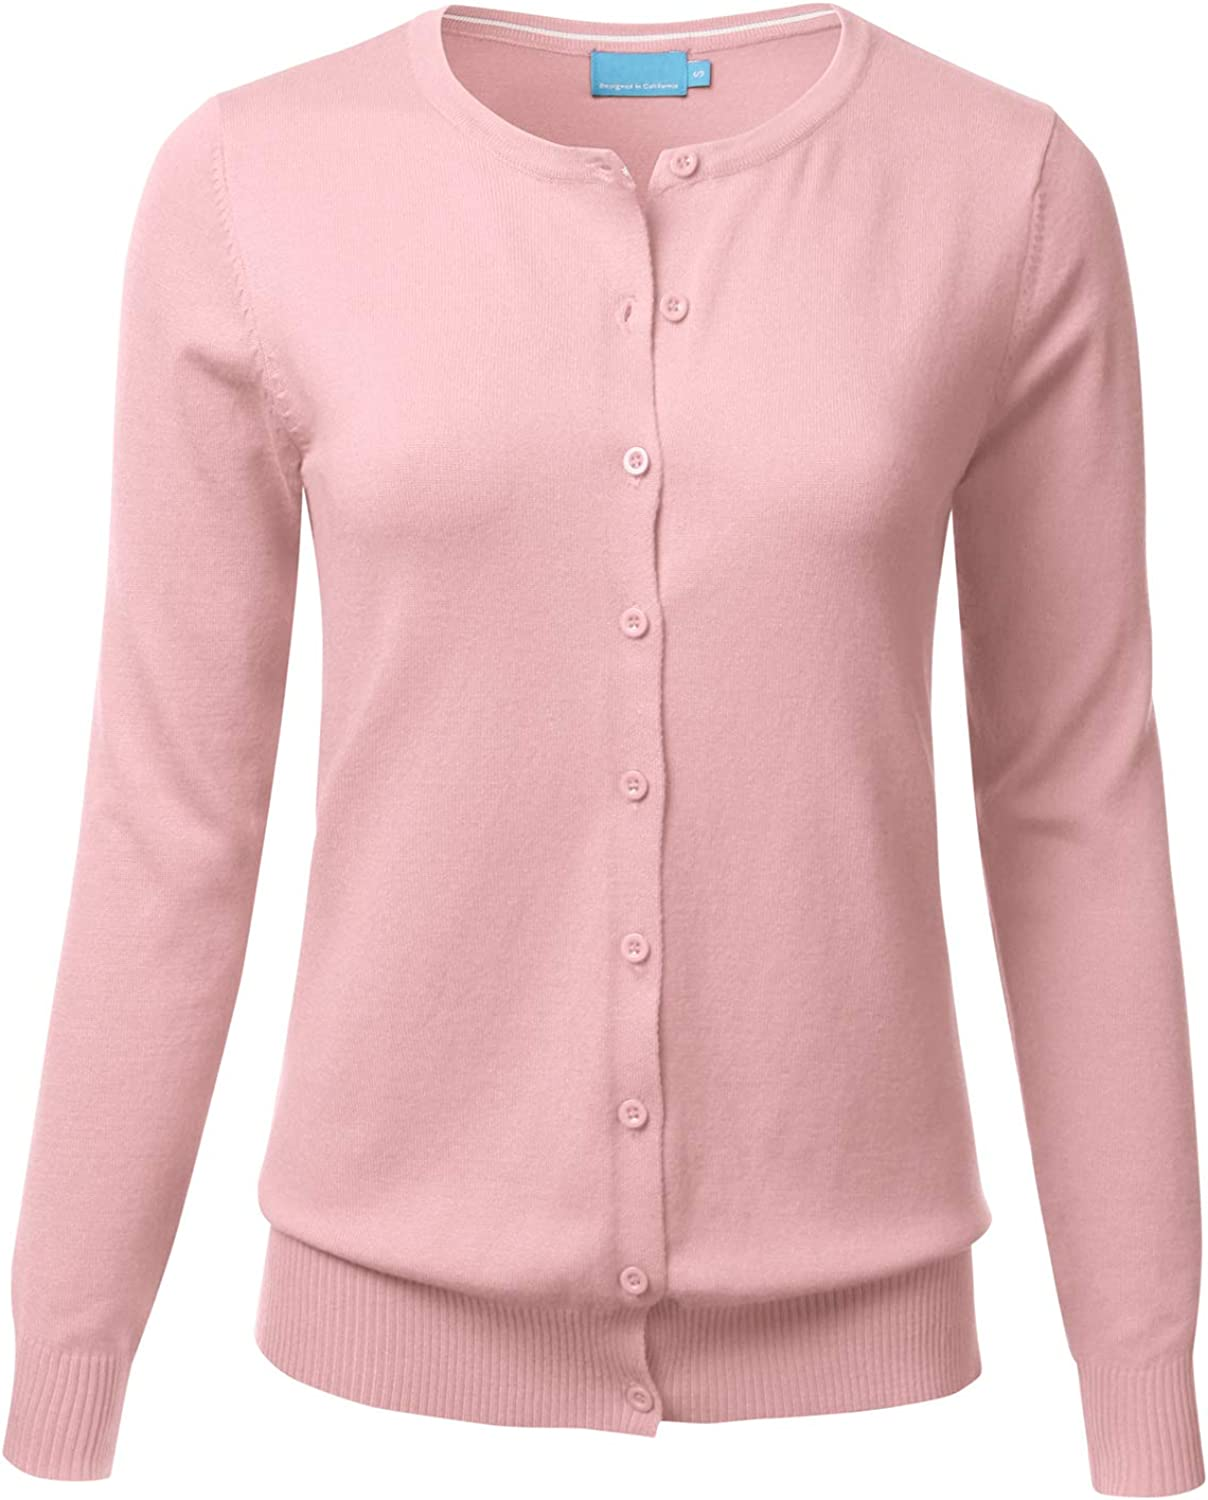 FLORIA Women's Button Down Crew Neck Long Sleeve Soft Knit Cardigan Sweater Dustypink S